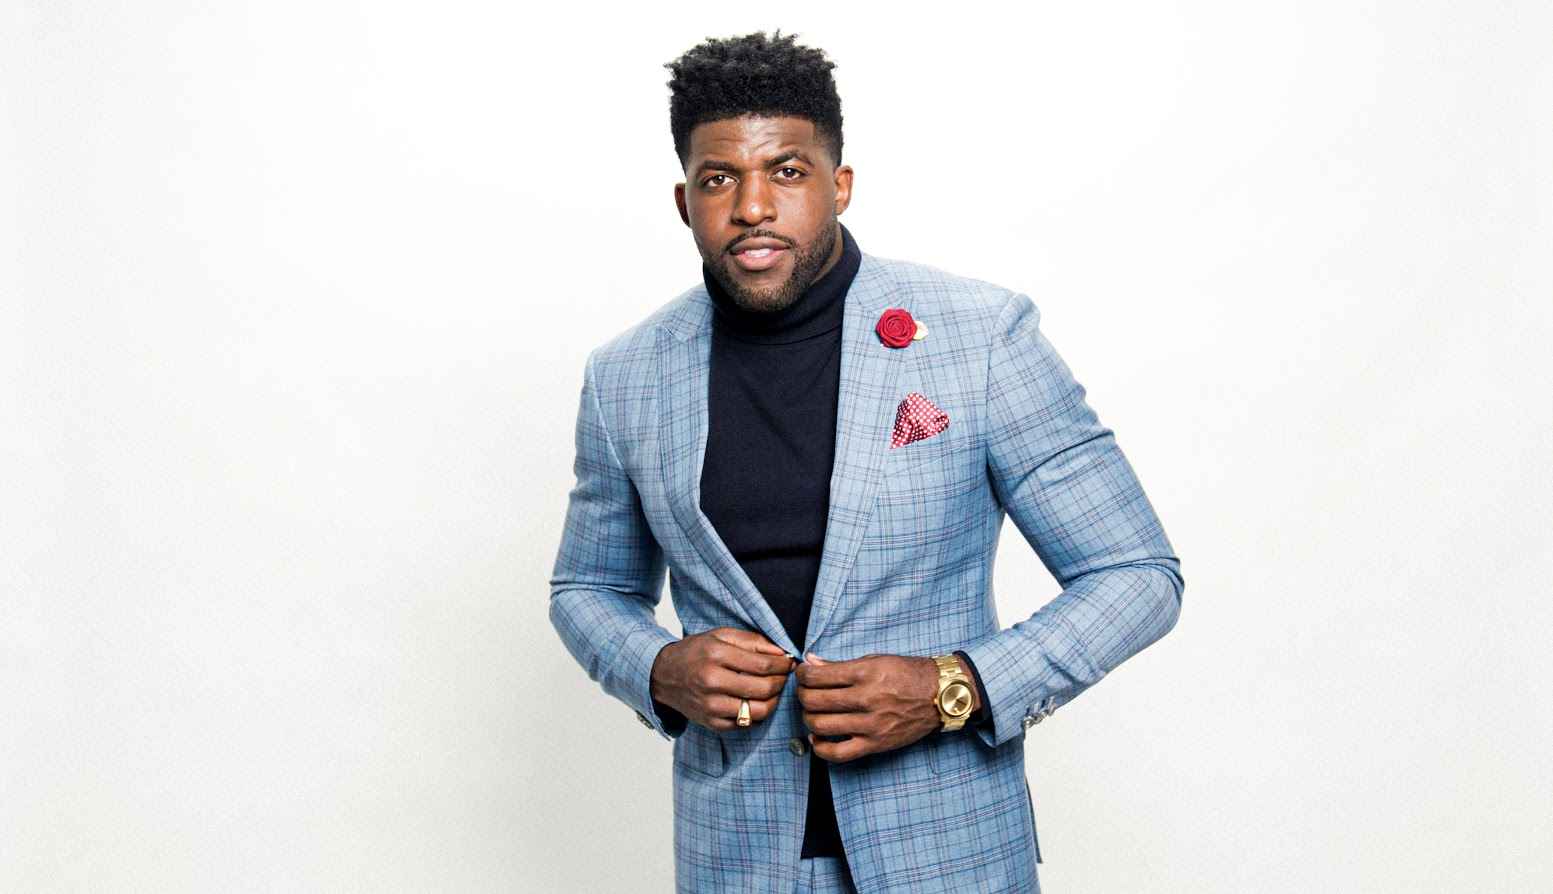 'The Bachelor: After The Final Rose': Emmanuel Acho To Fill In For Chris Harrison As Host